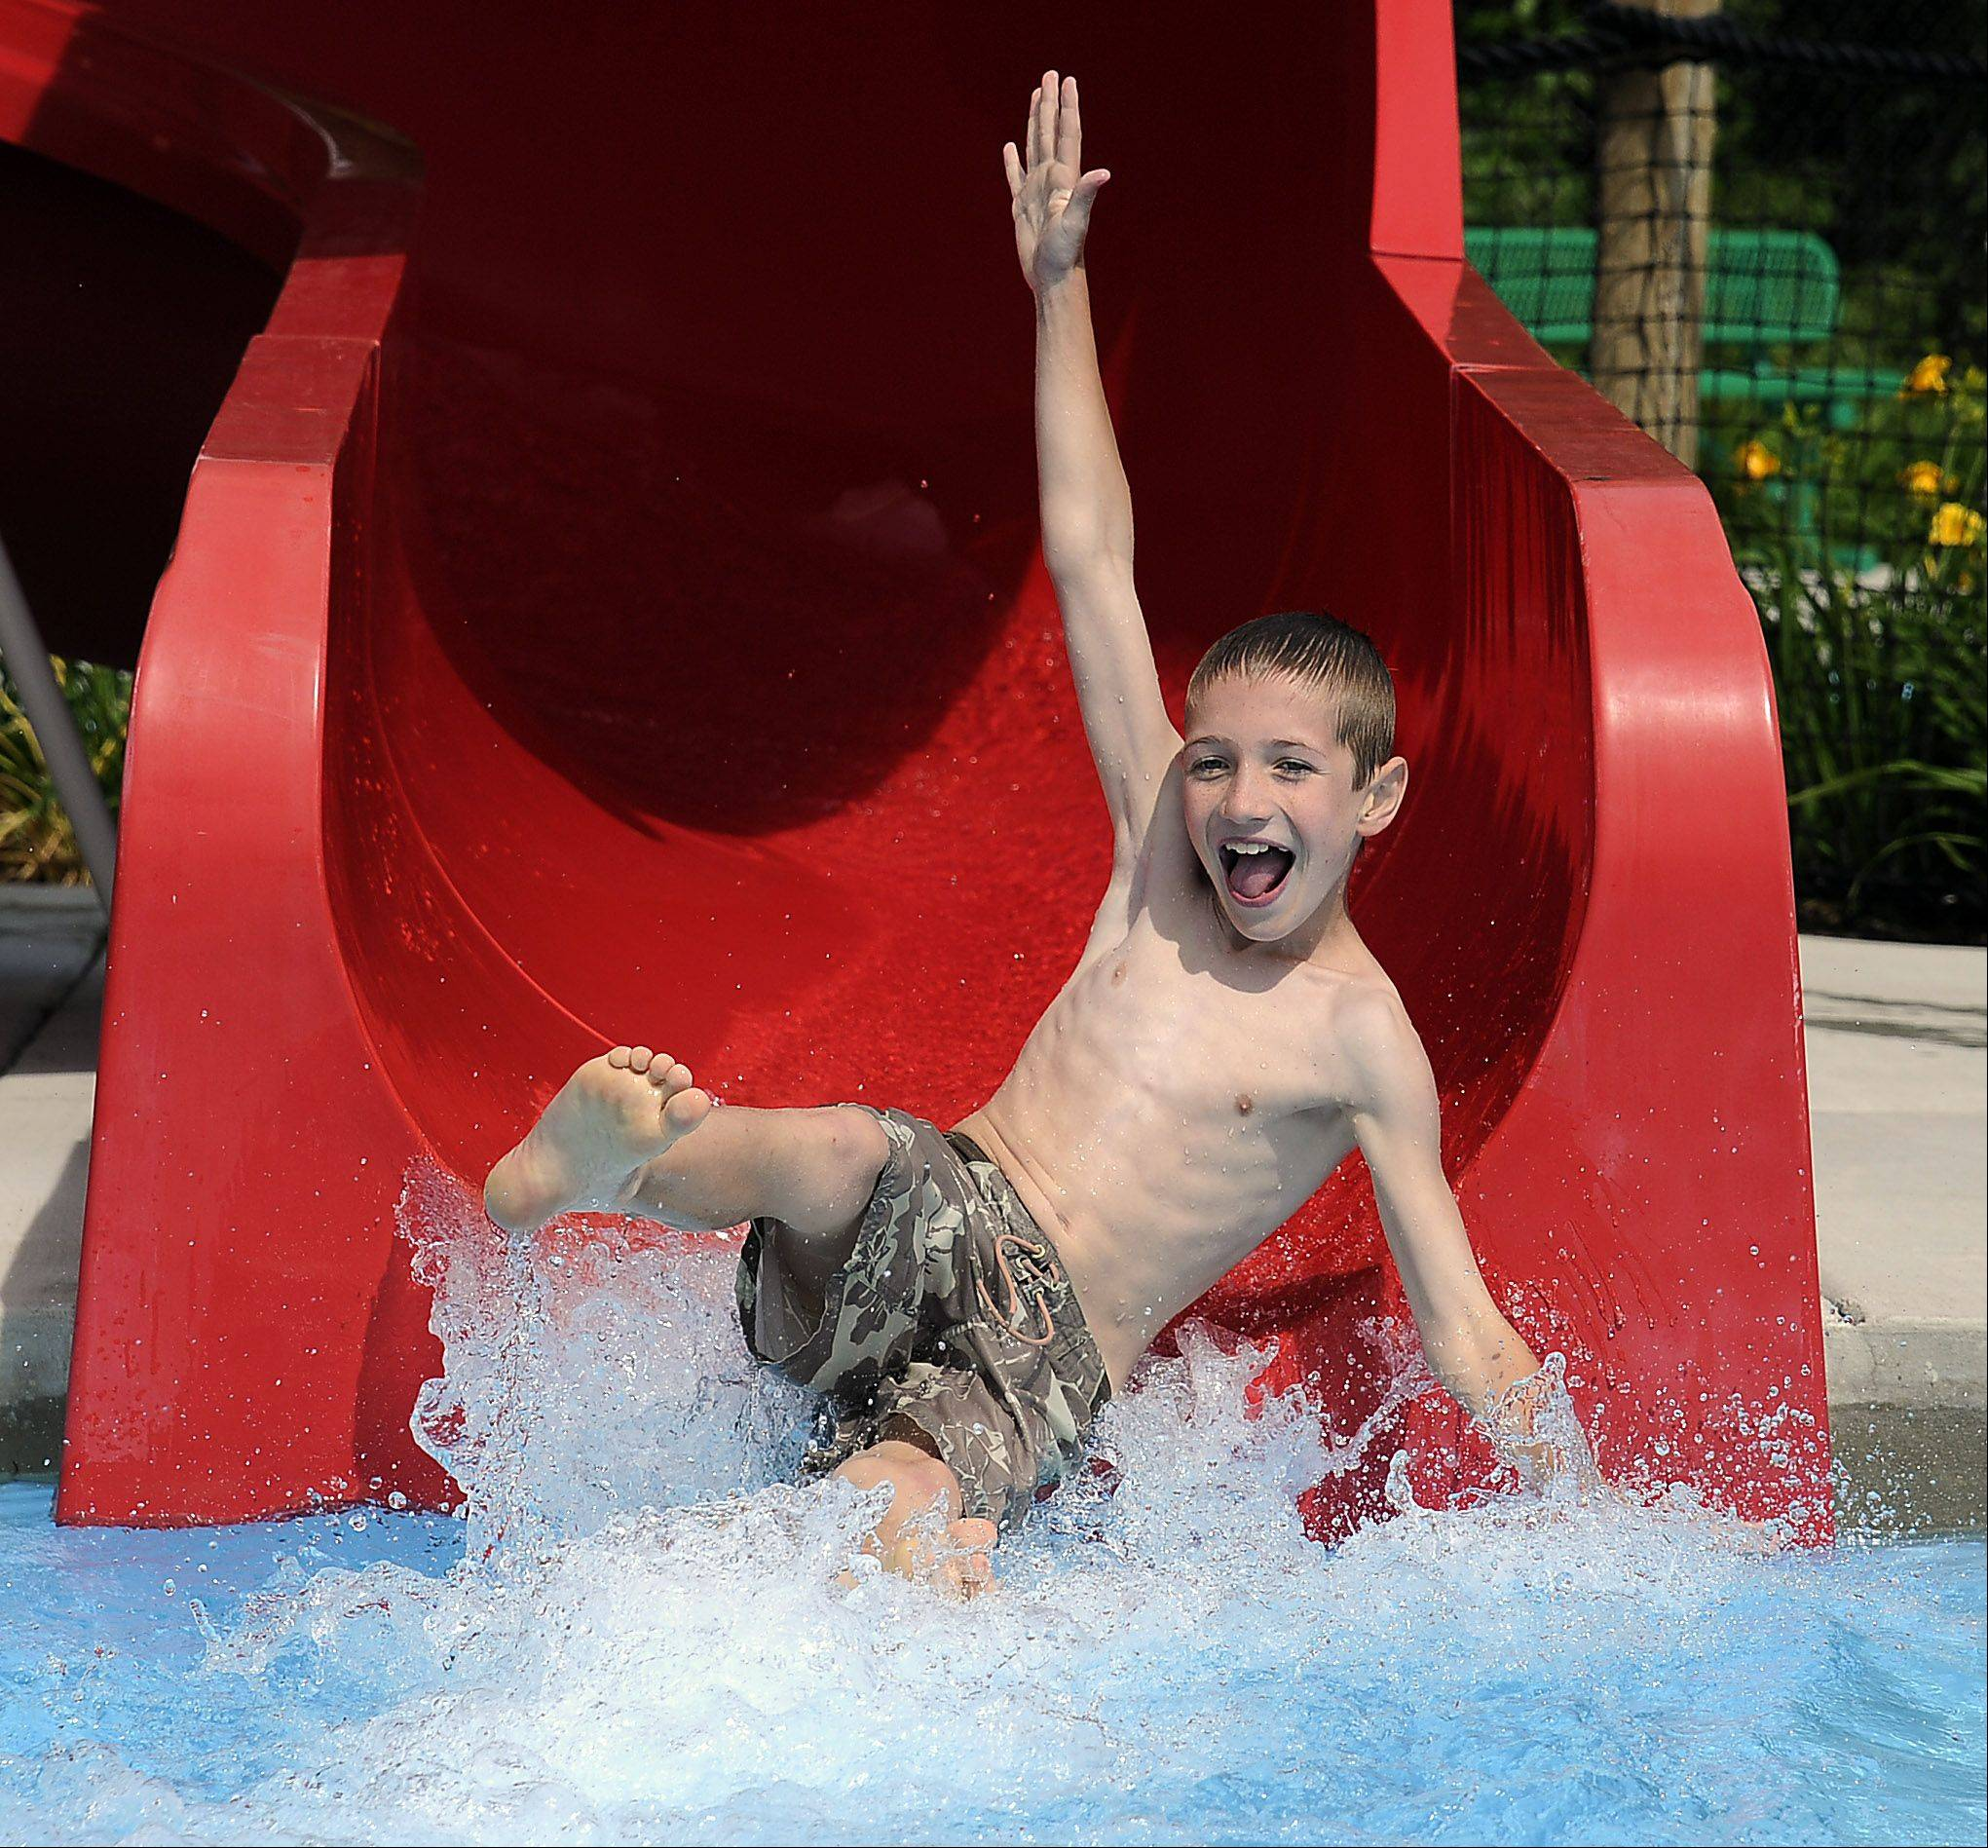 Summer fun is in full swing at Eagle pool in Palatine according to Carson Palmer, 10, of Palatine as he beats the heat splashing his way down the water slide with his buddies.